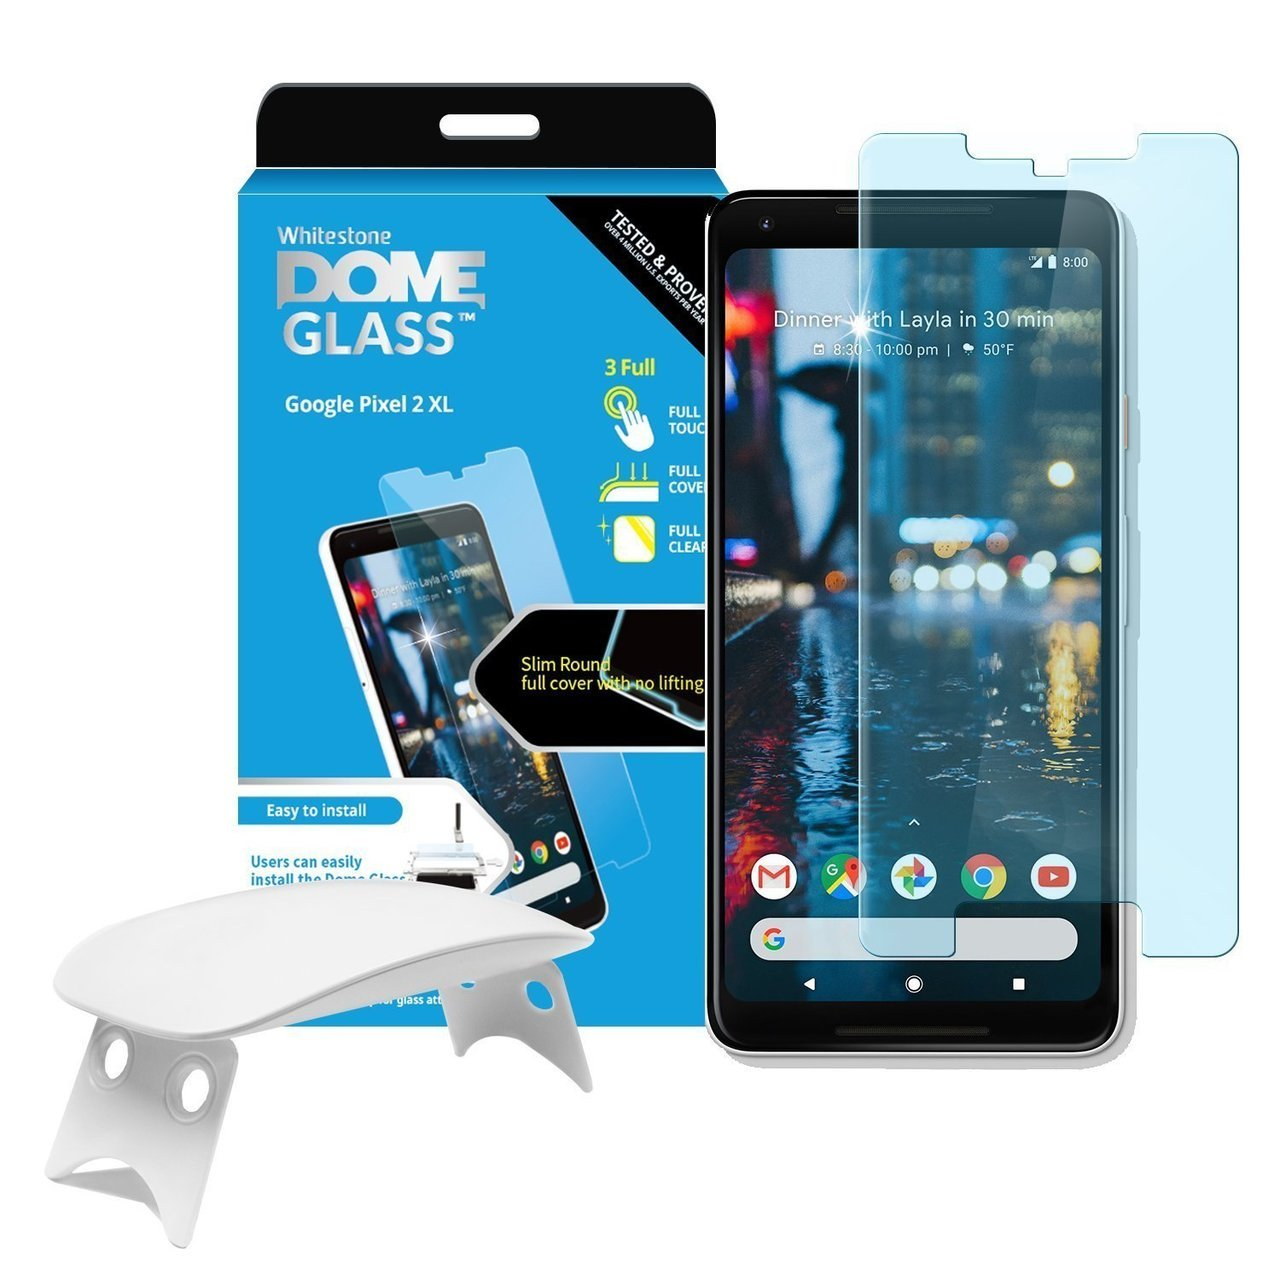 Google Pixel 2 Xl Whitestone Dome Glass with UV Light & Easy Install Kit